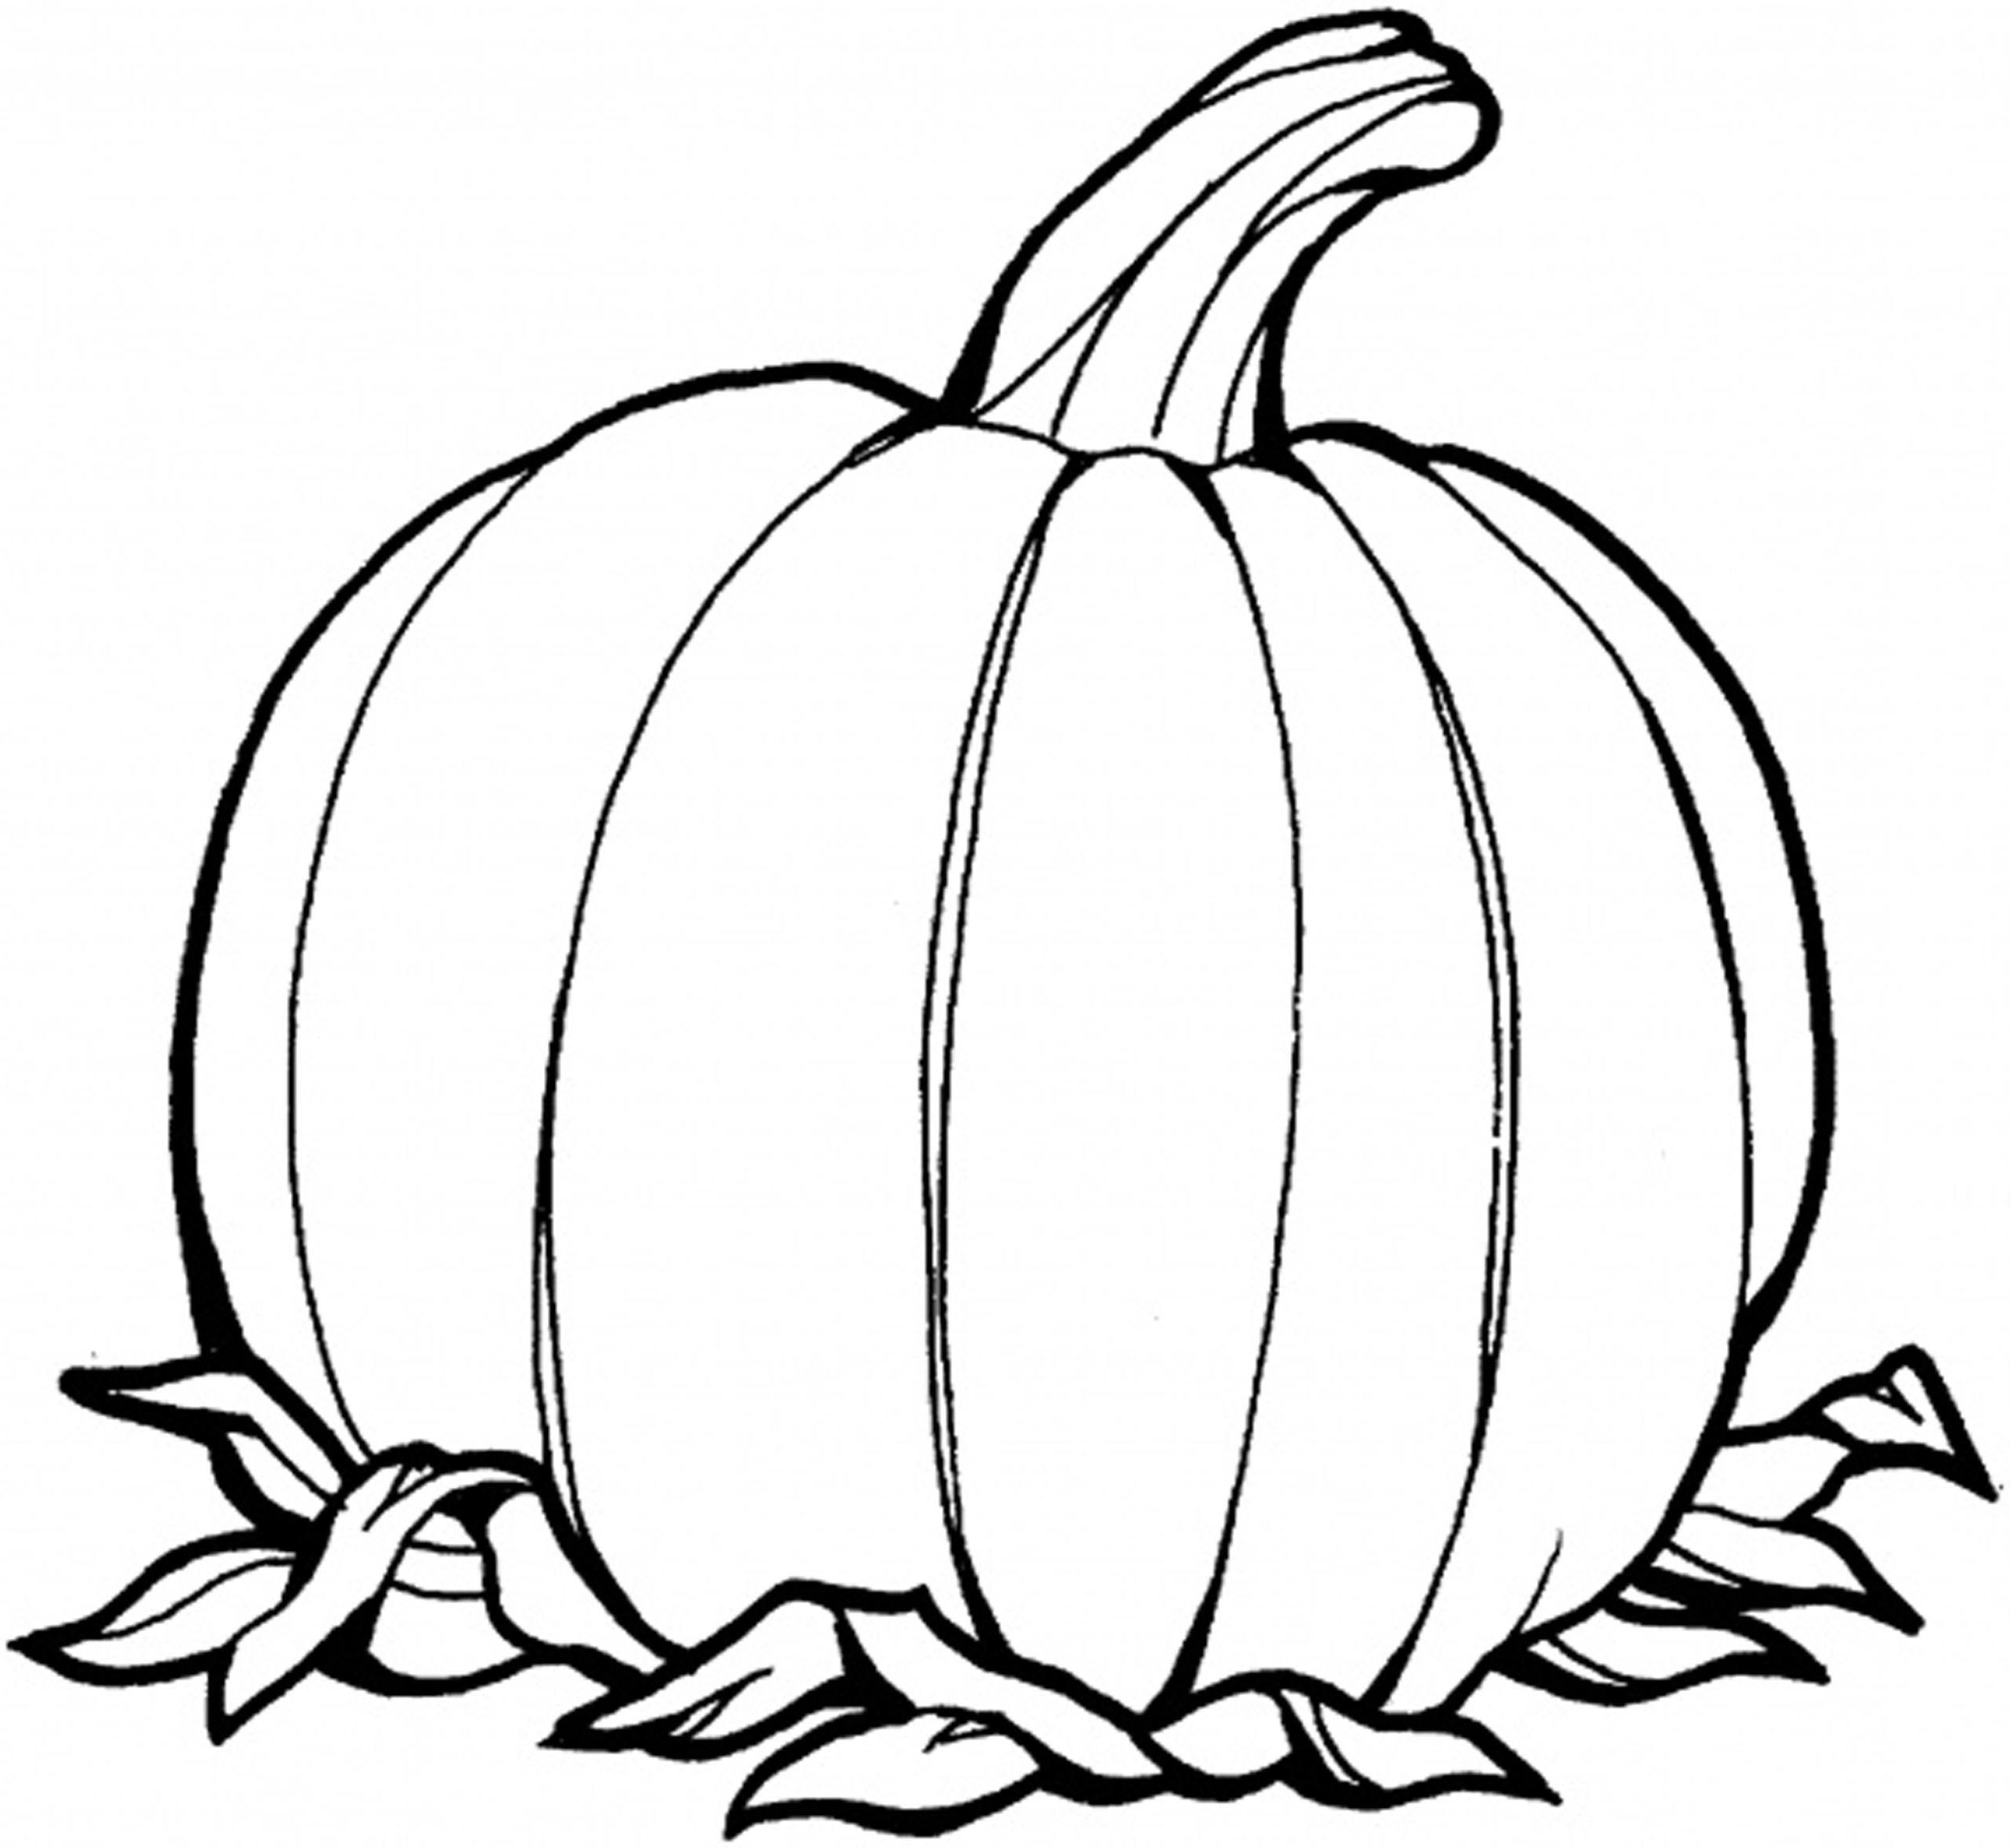 pumpkin coloring pages free printable free printable pumpkin coloring pages for kids halloween pumpkin pages printable free coloring